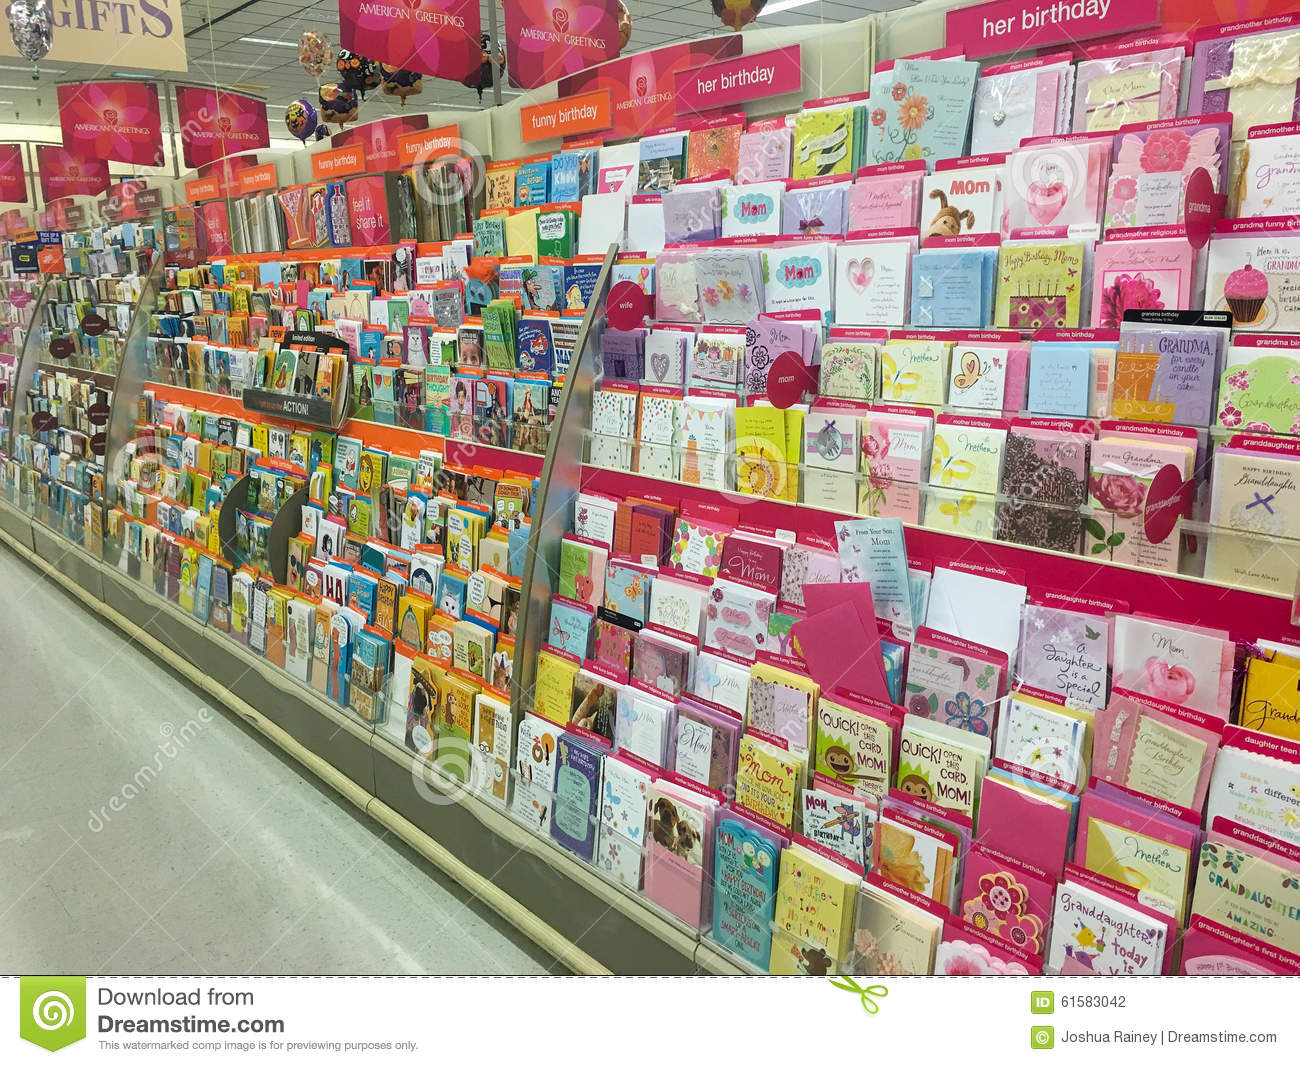 American greetings e cards recent sale m4hsunfo